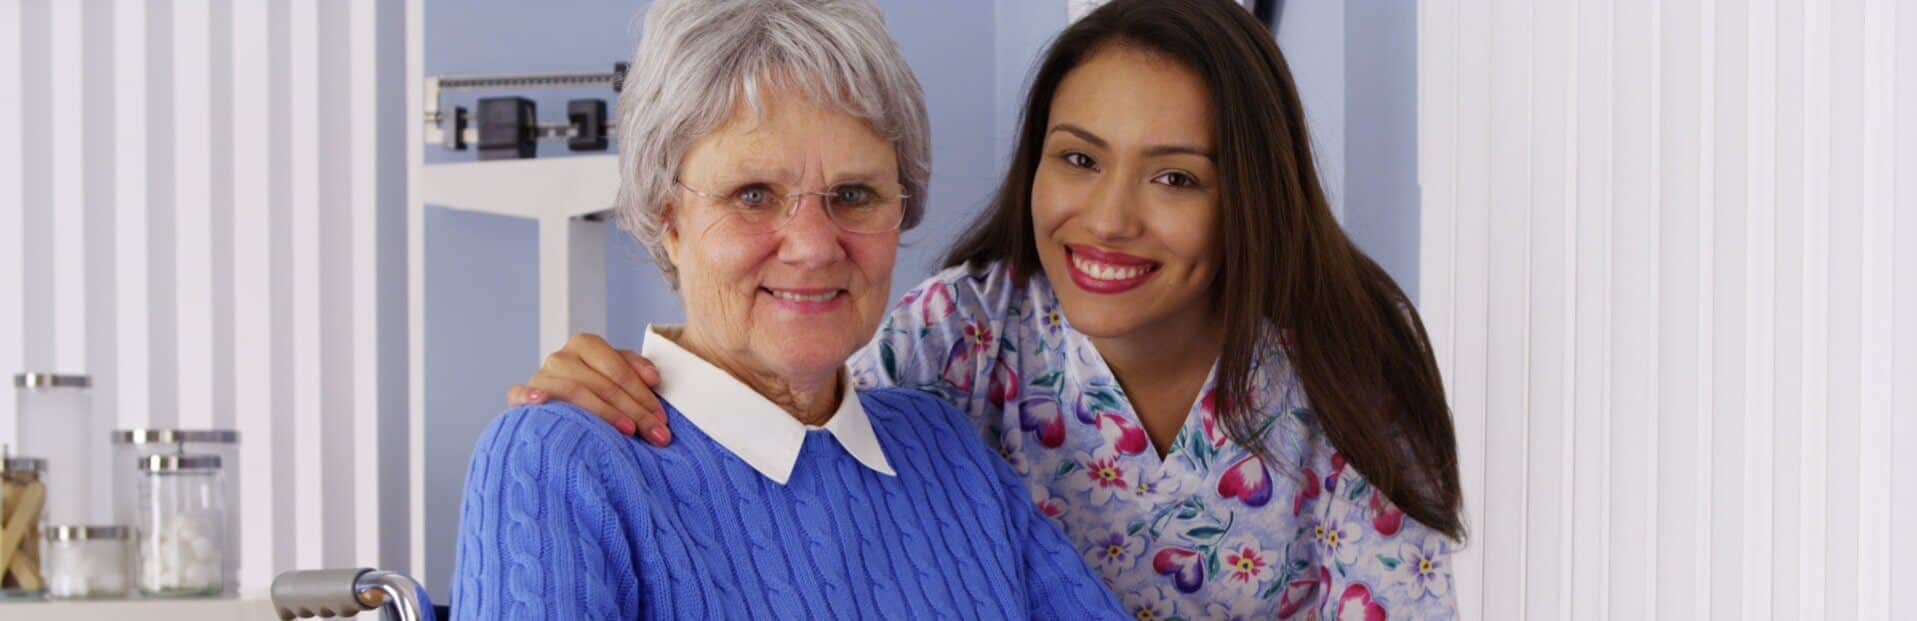 caregiver with old woman